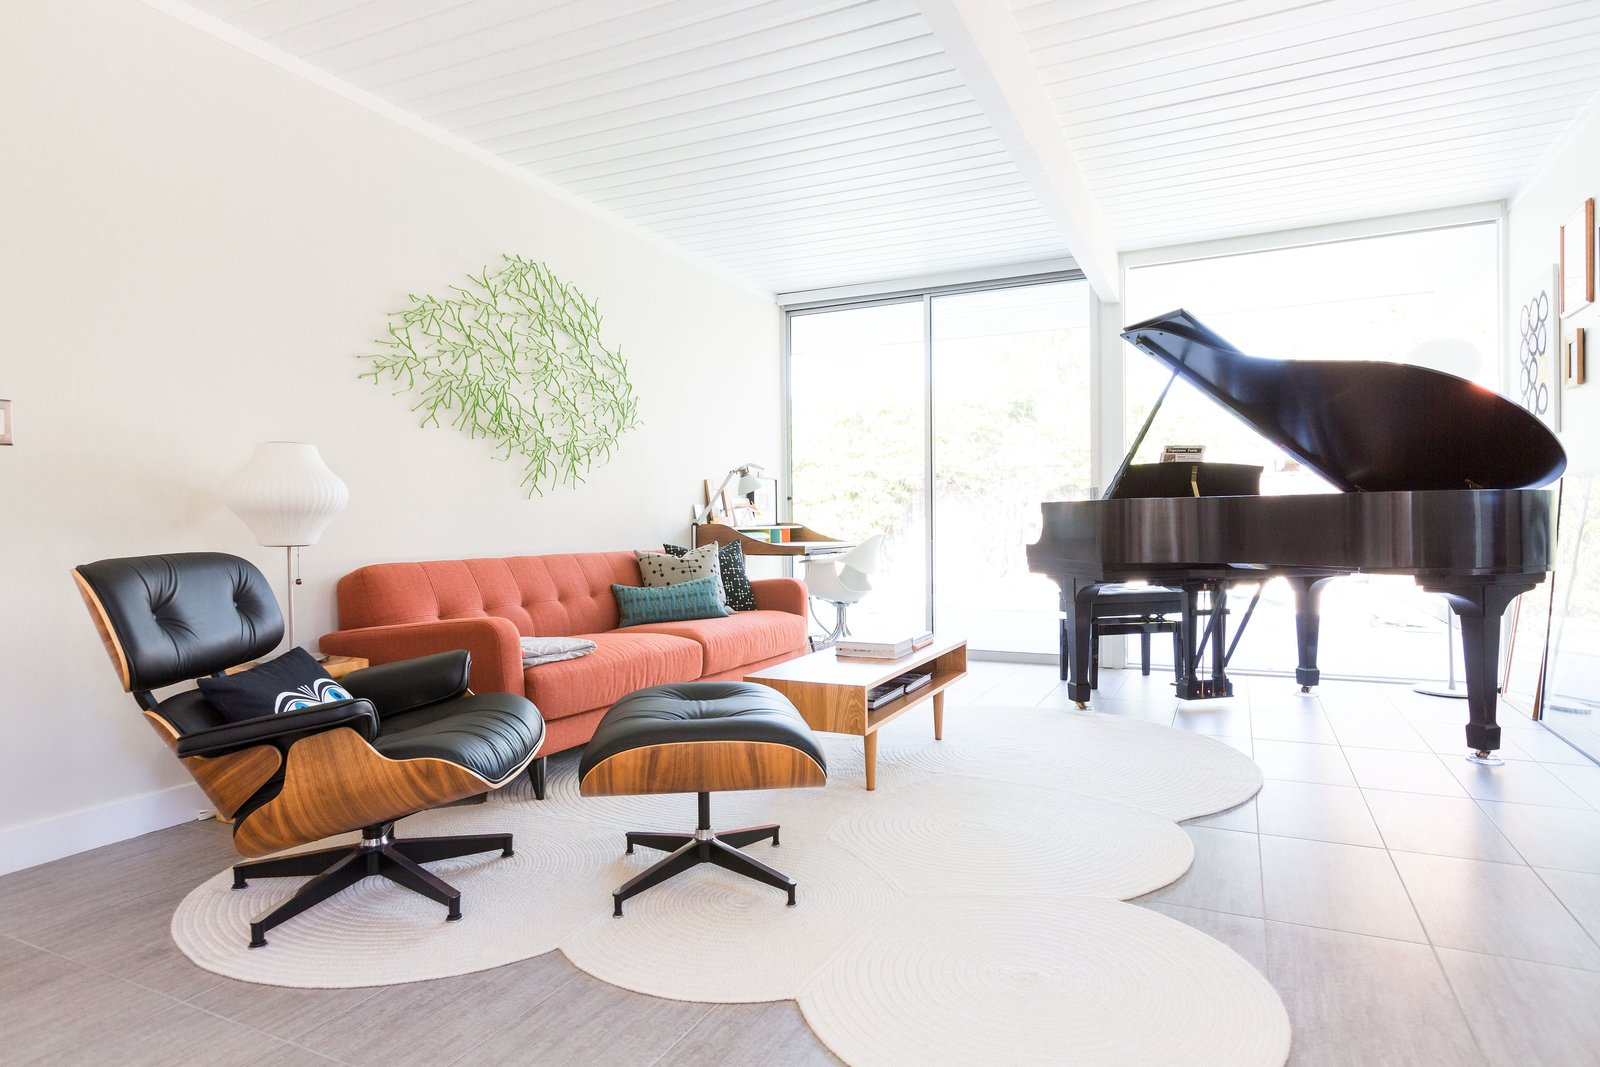 Shop the Look: Midcentury Living Room